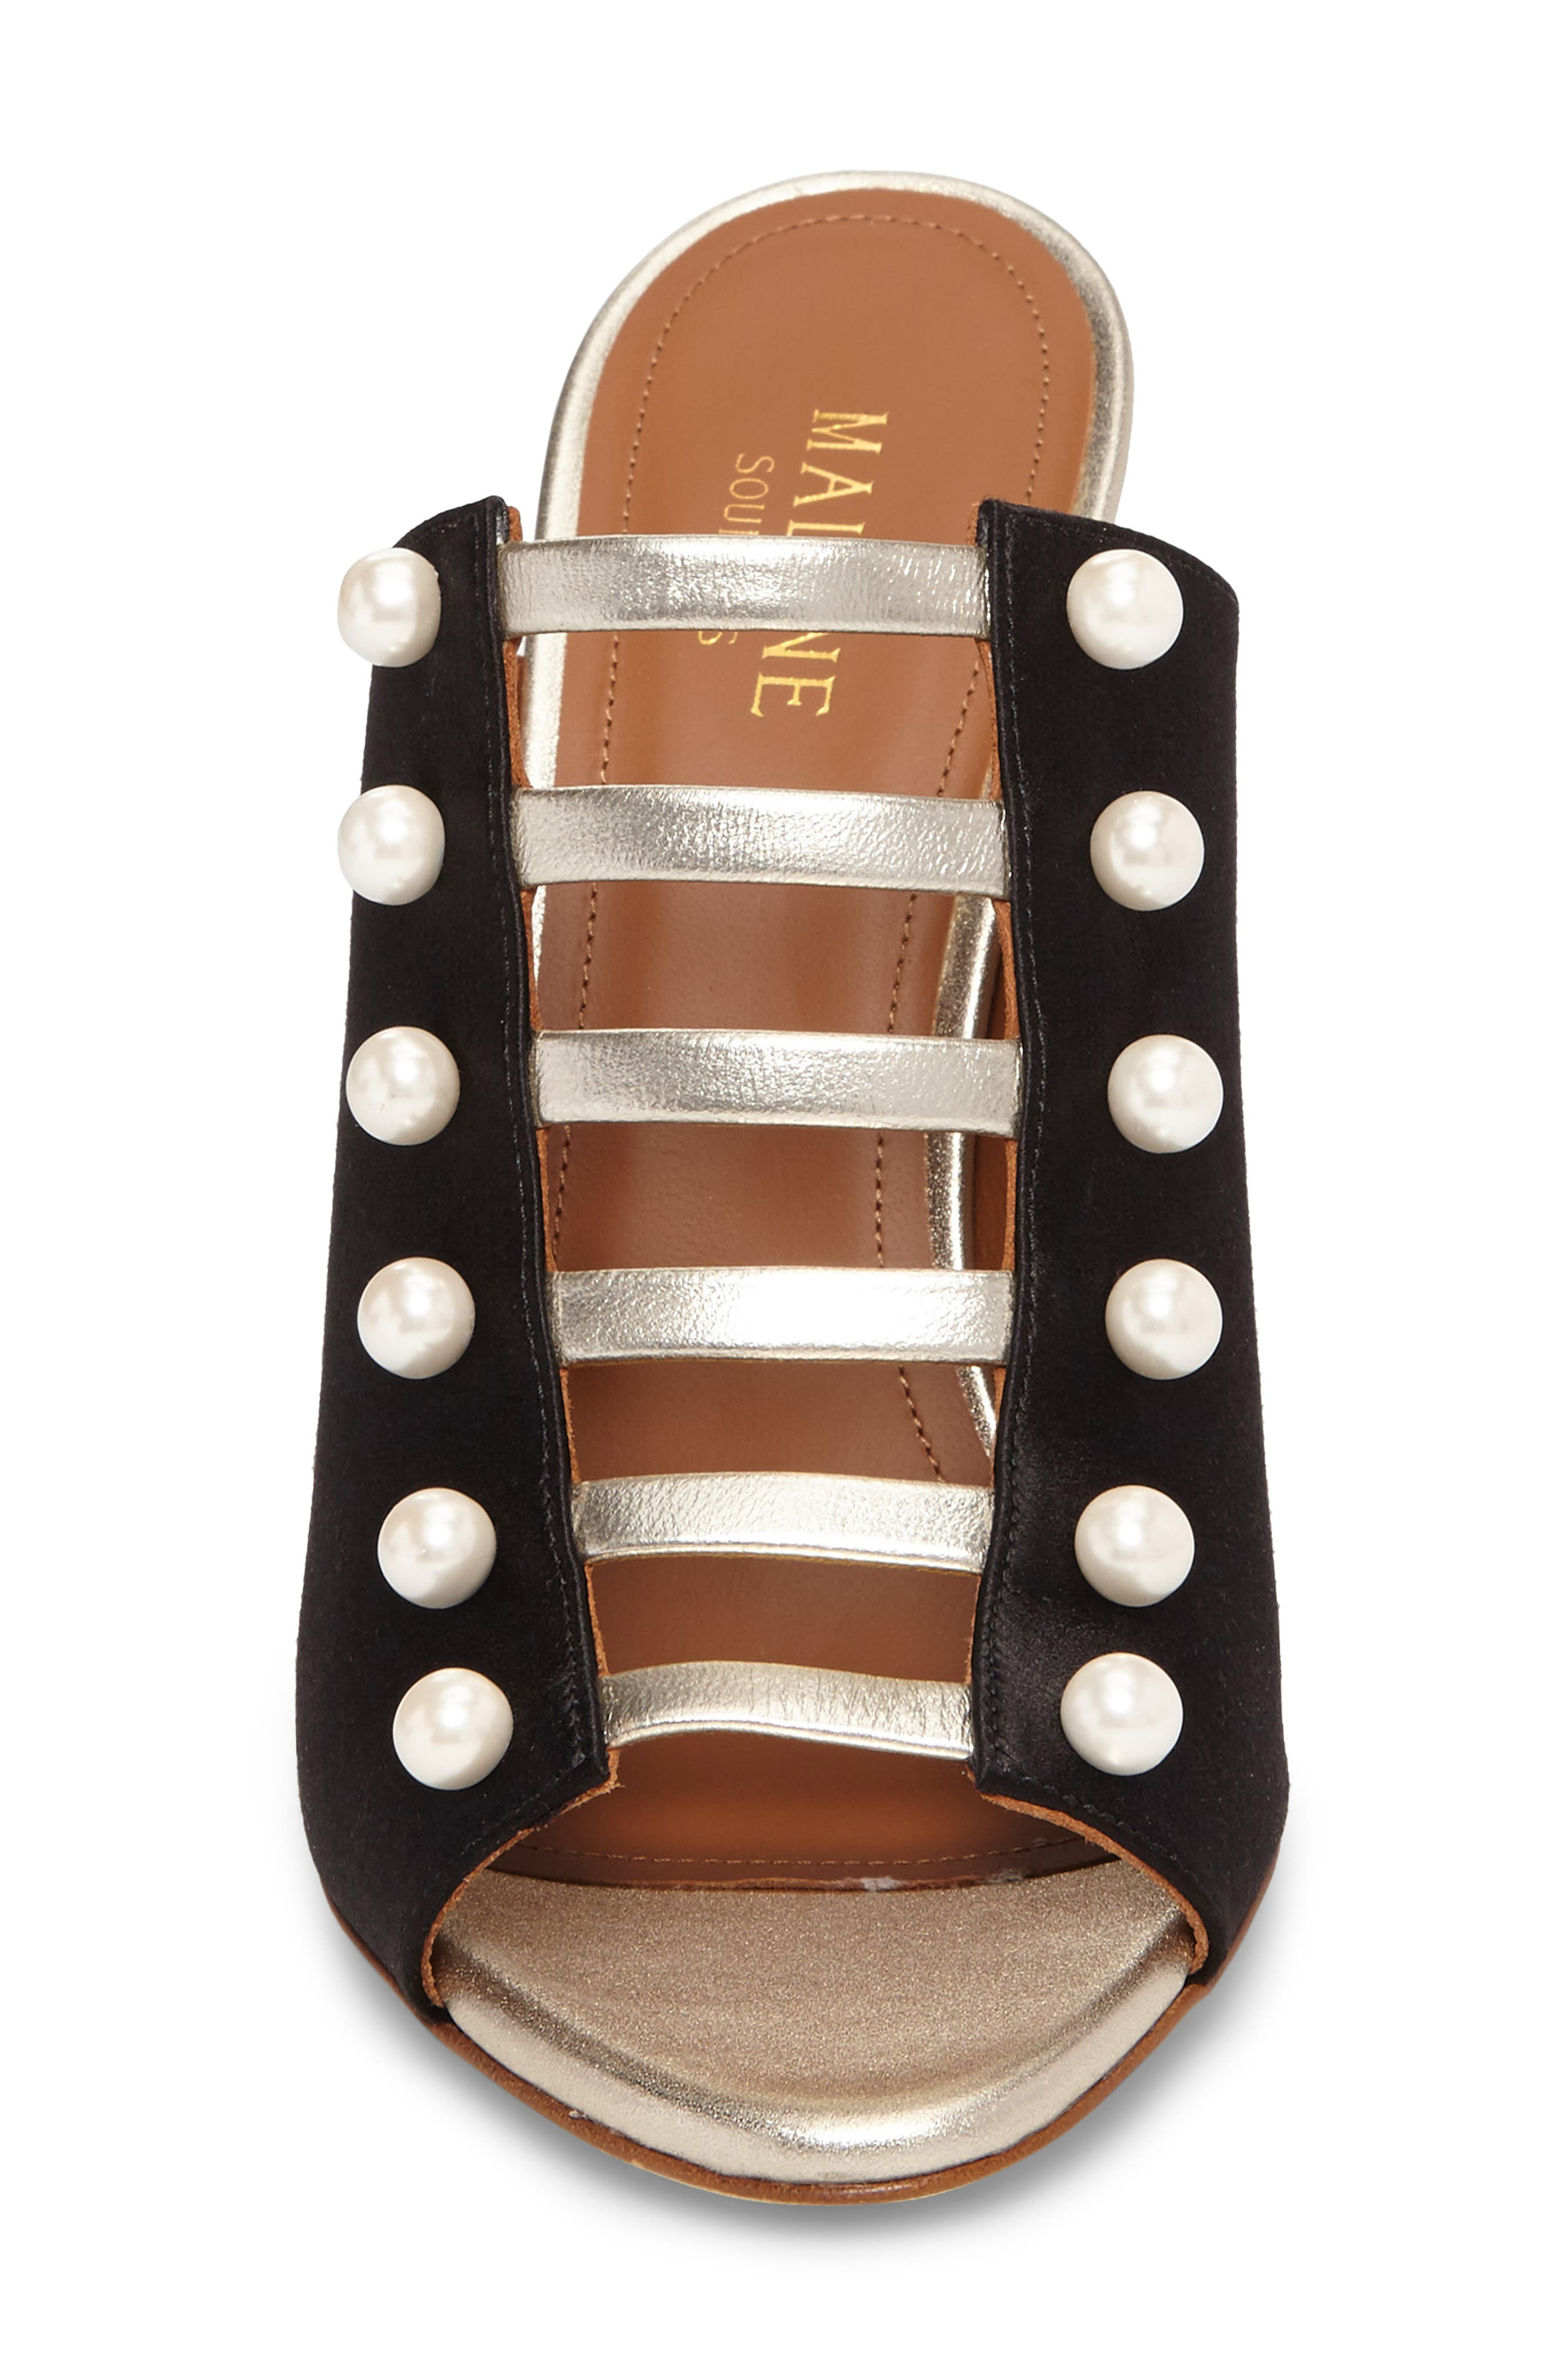 Imitation Pearl Studded Slide,                             Alternate thumbnail 4, color,                             Black/ Platino